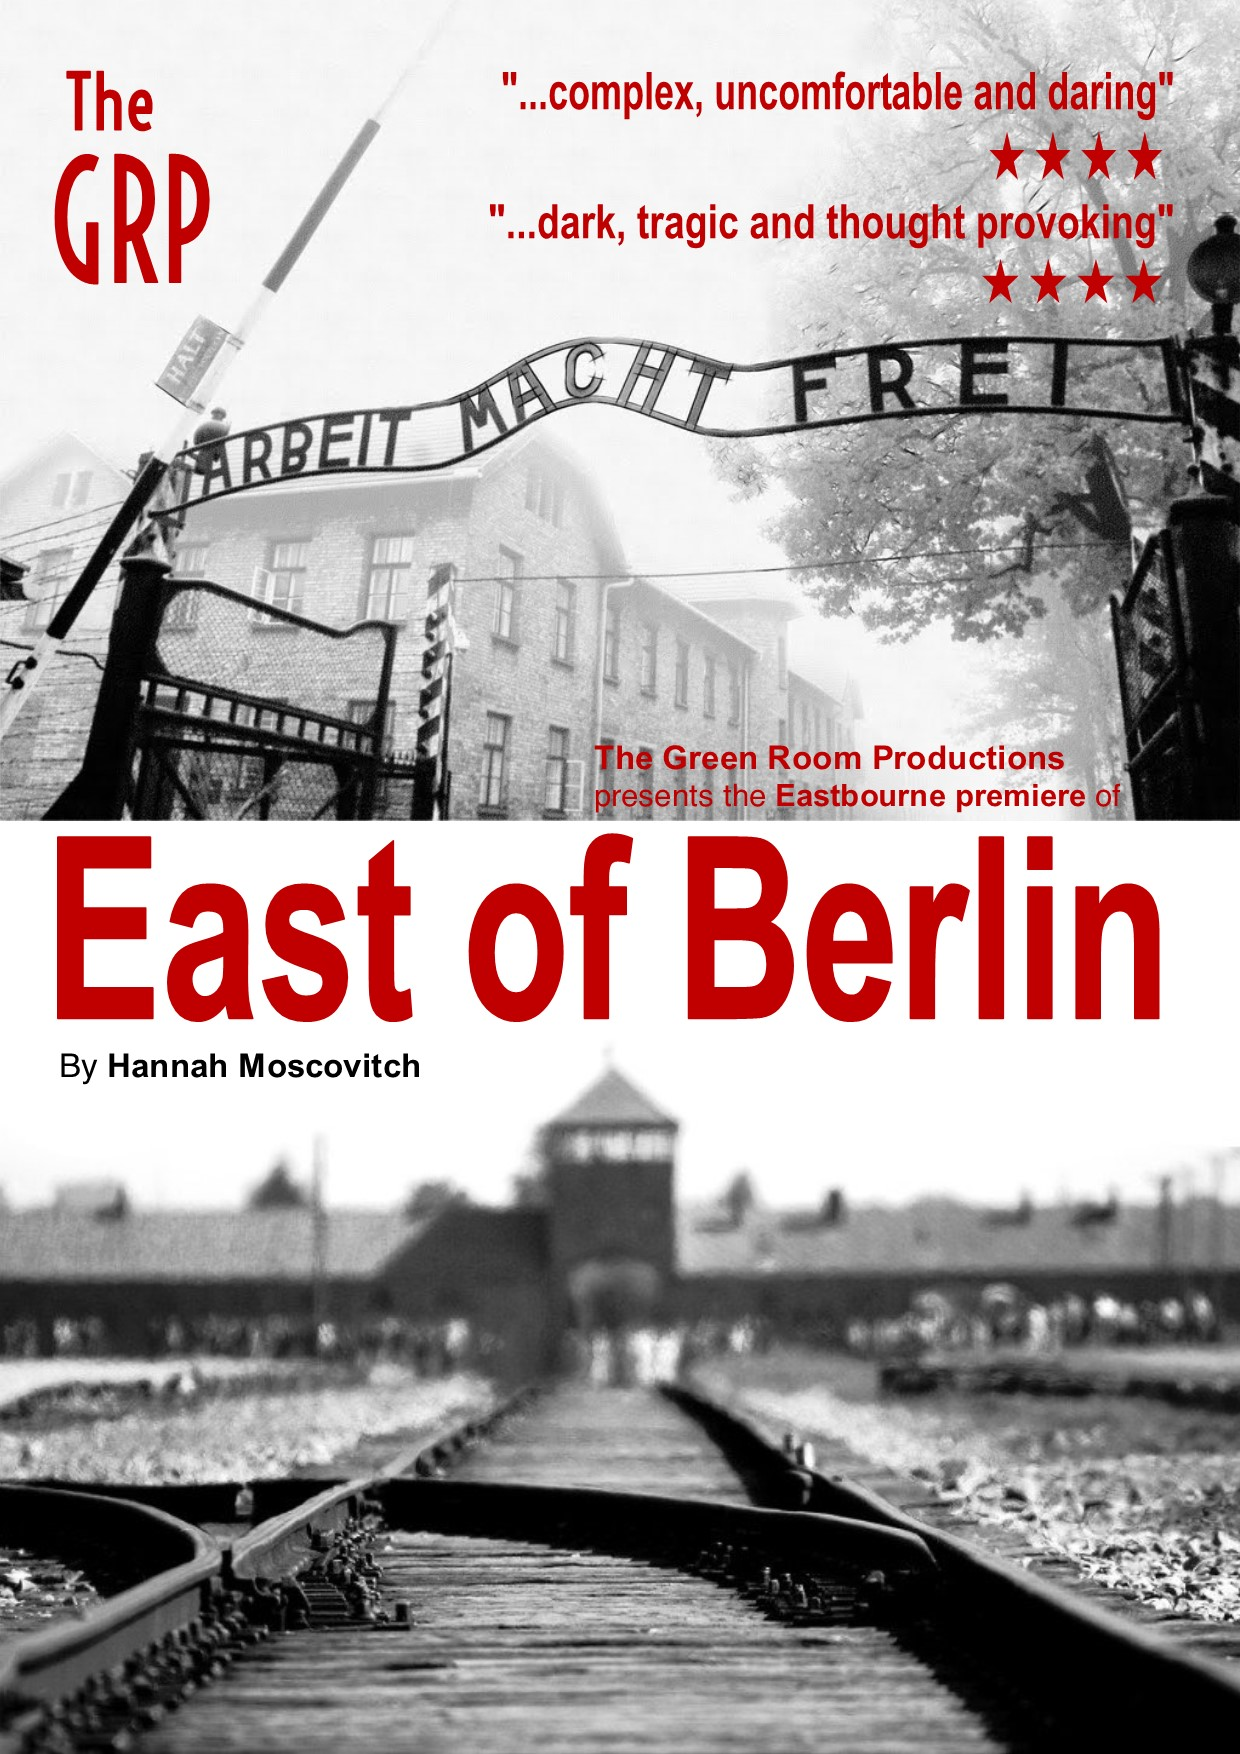 East of Berlin - The Green Room Productions, Eastbourne